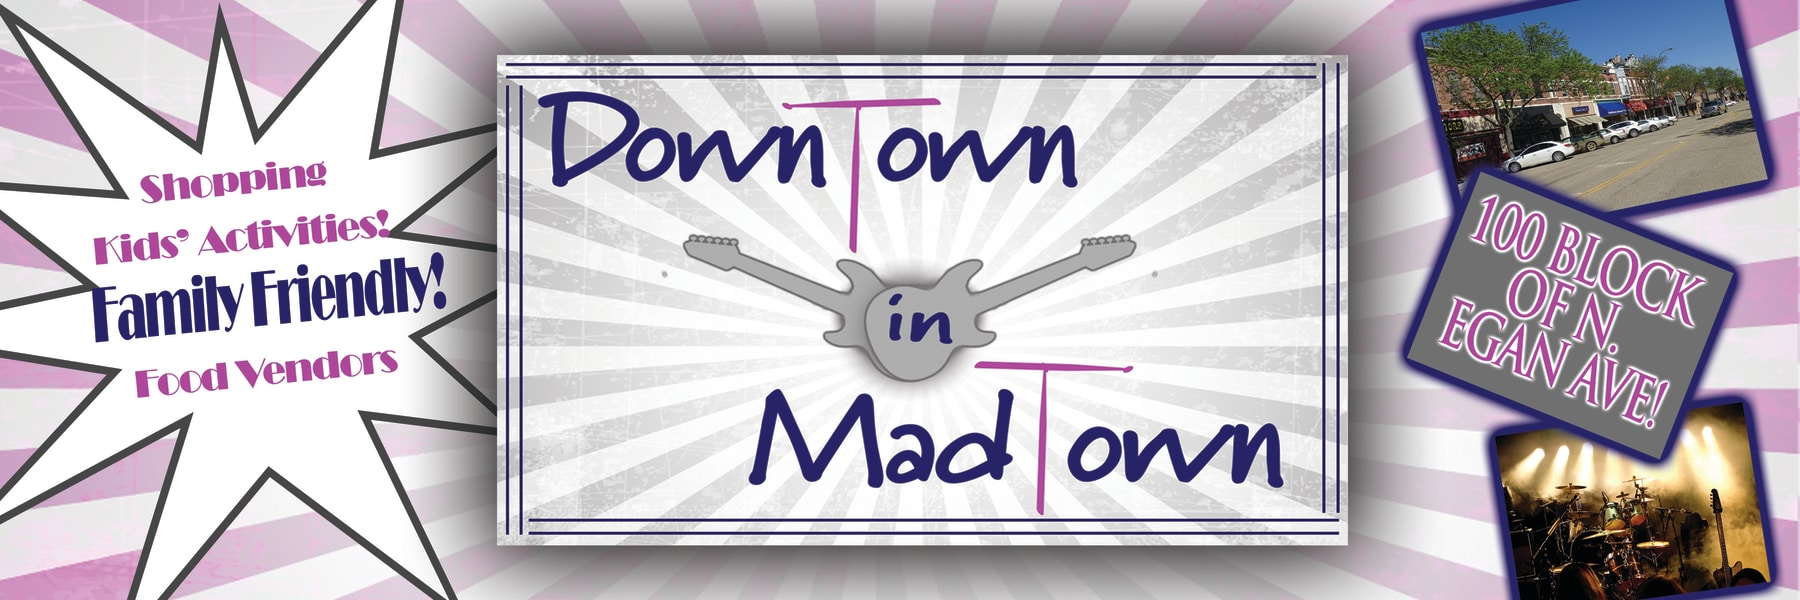 DownTown-in-MadTown-Web-Banner-w1800.jpg